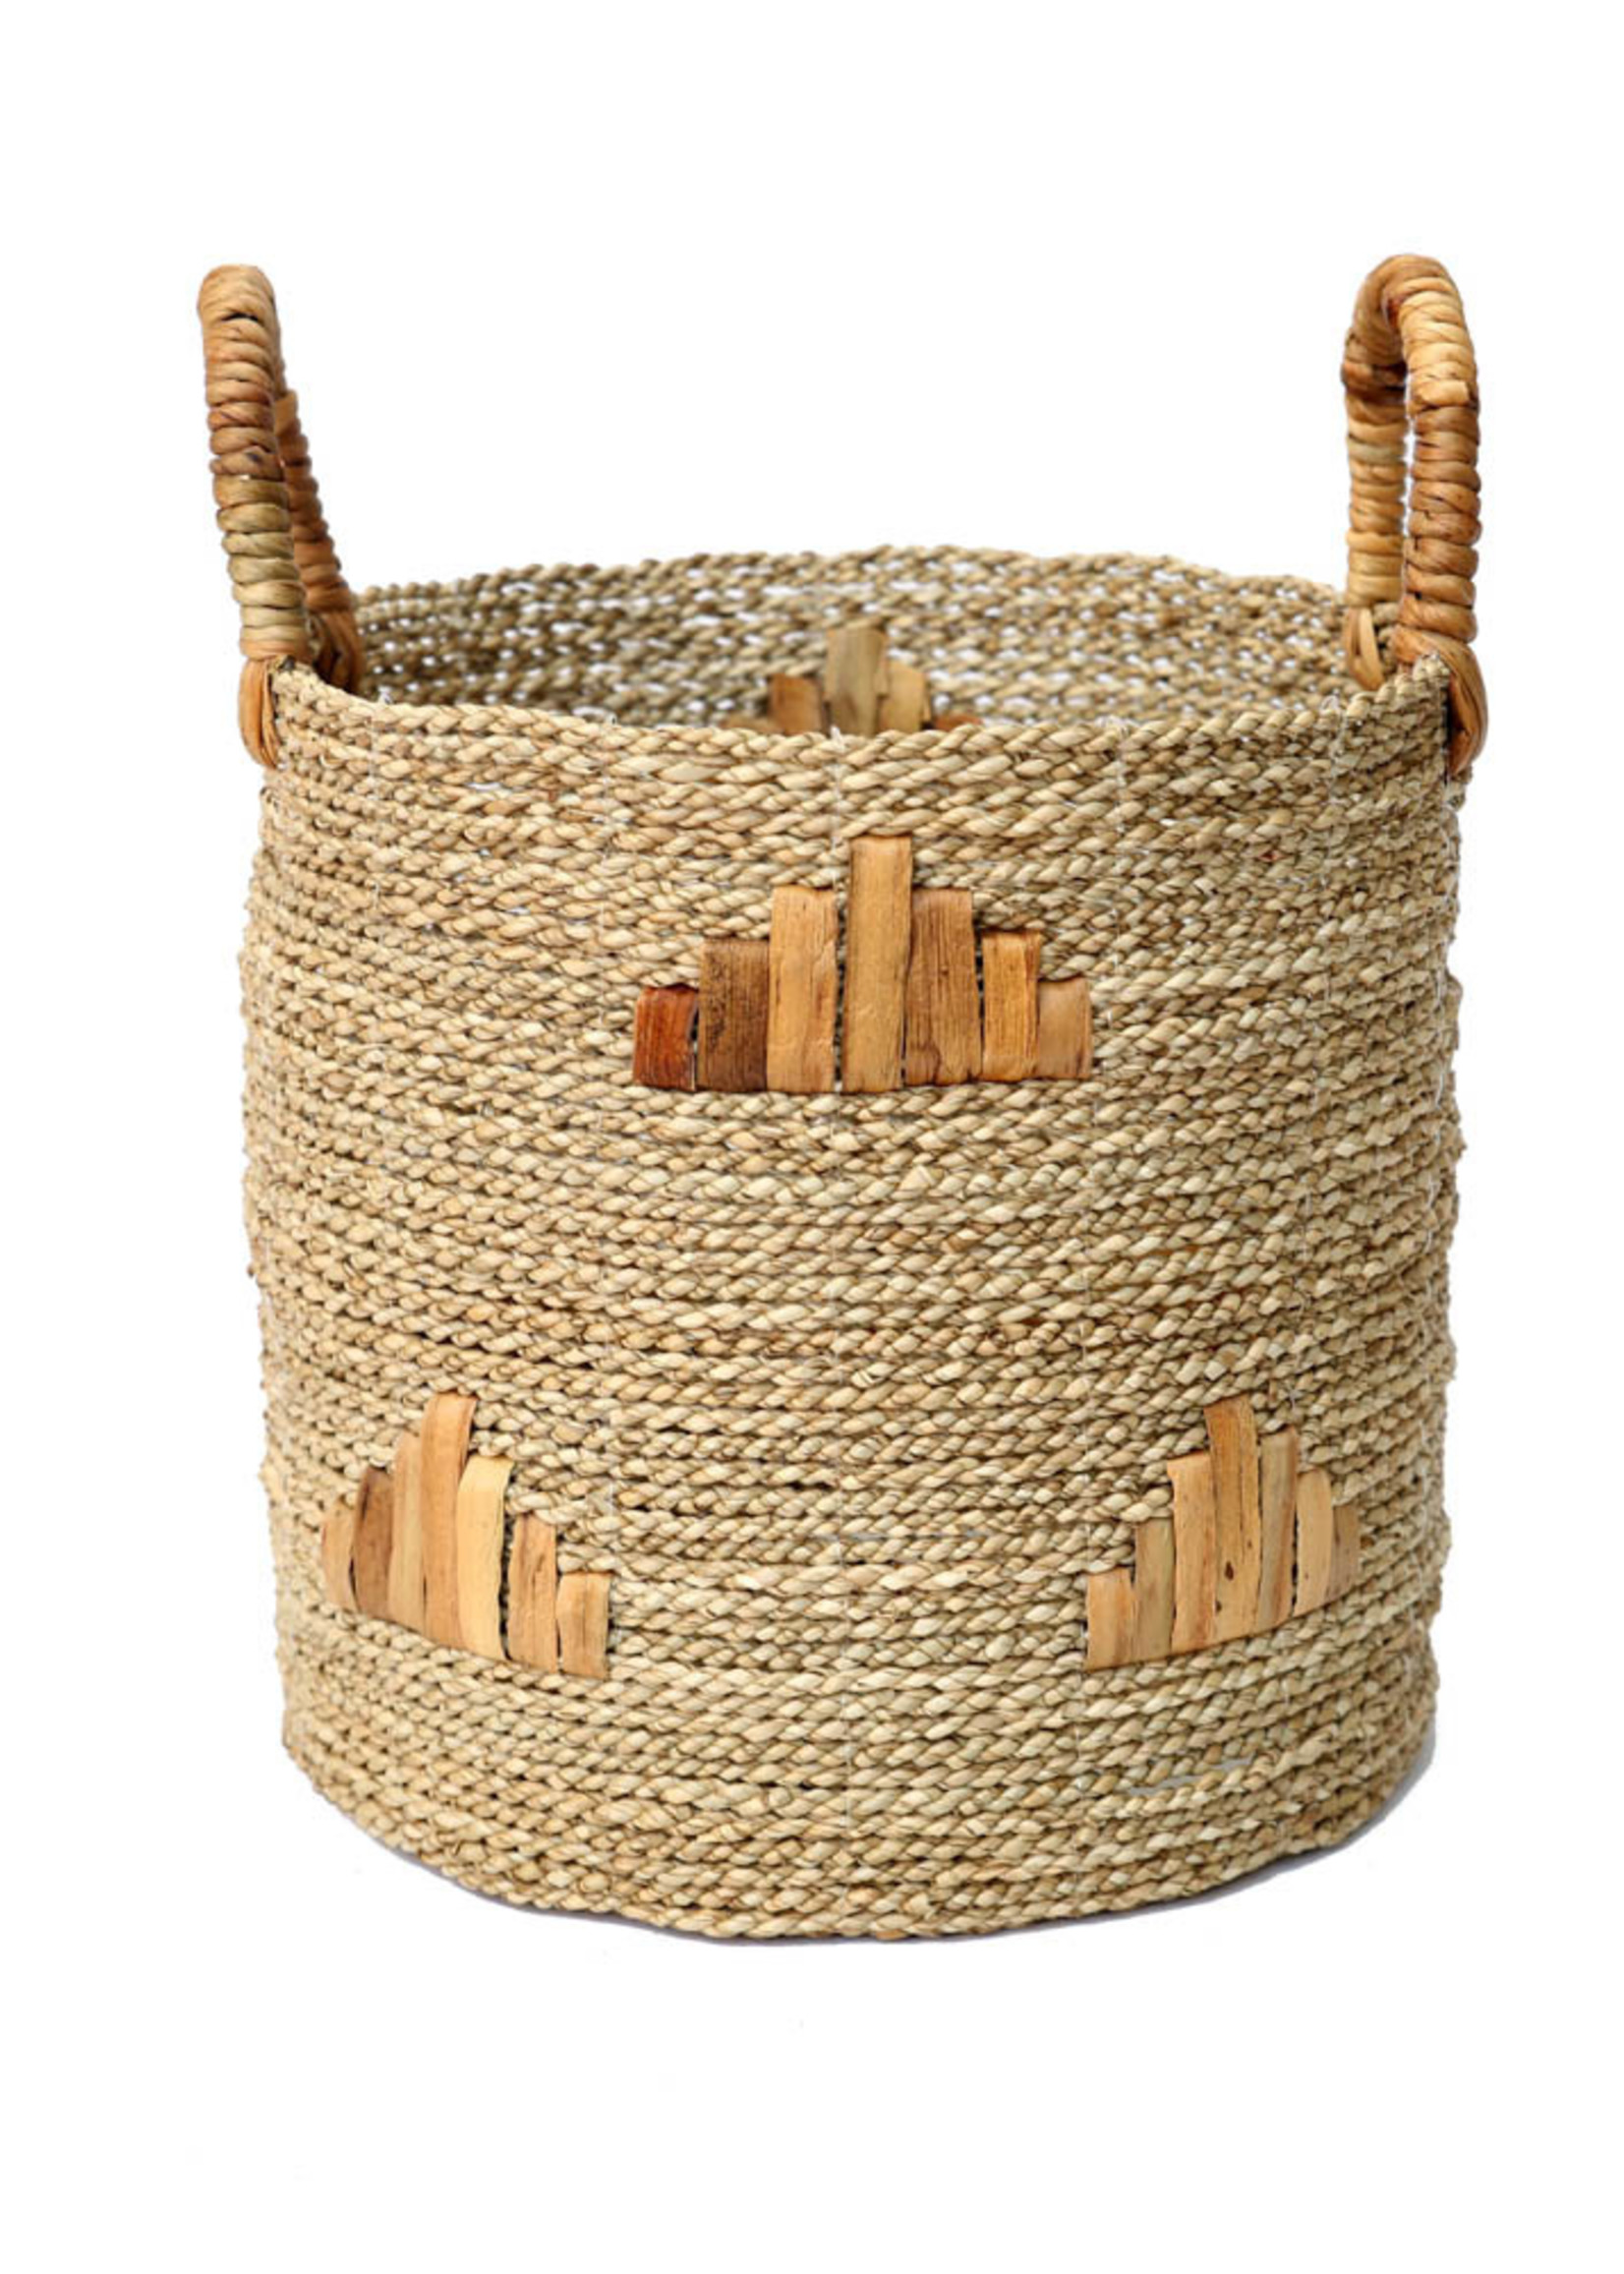 The Twiggy Graphic Baskets - Small